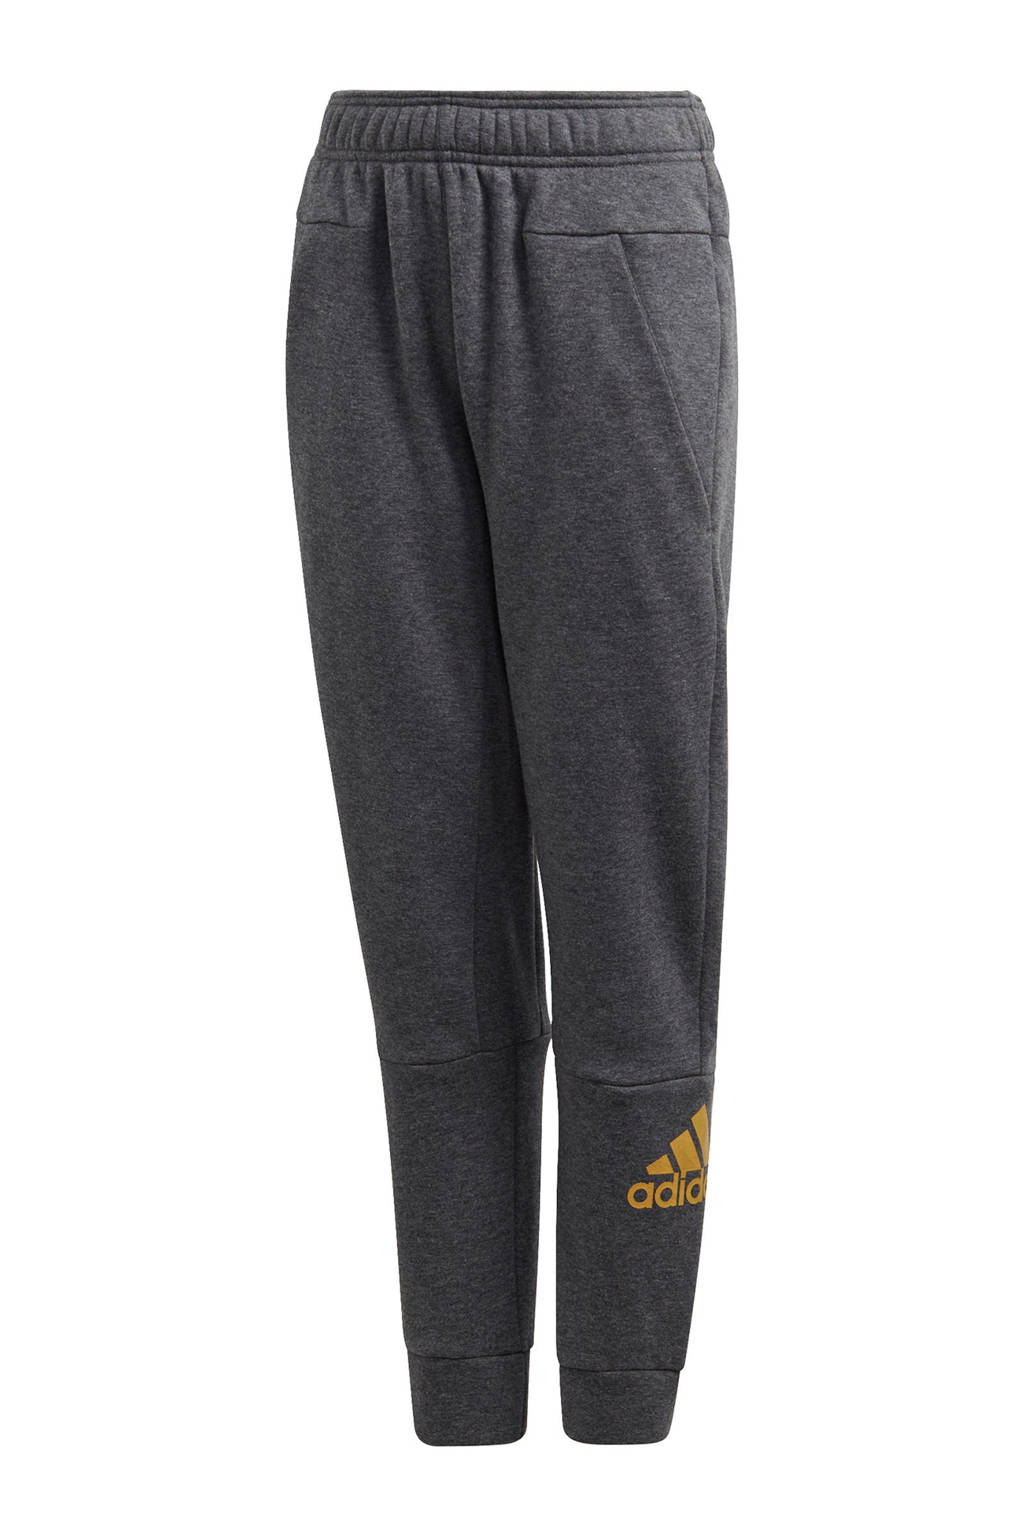 adidas performance   sportbroek antraciet, Antraciet